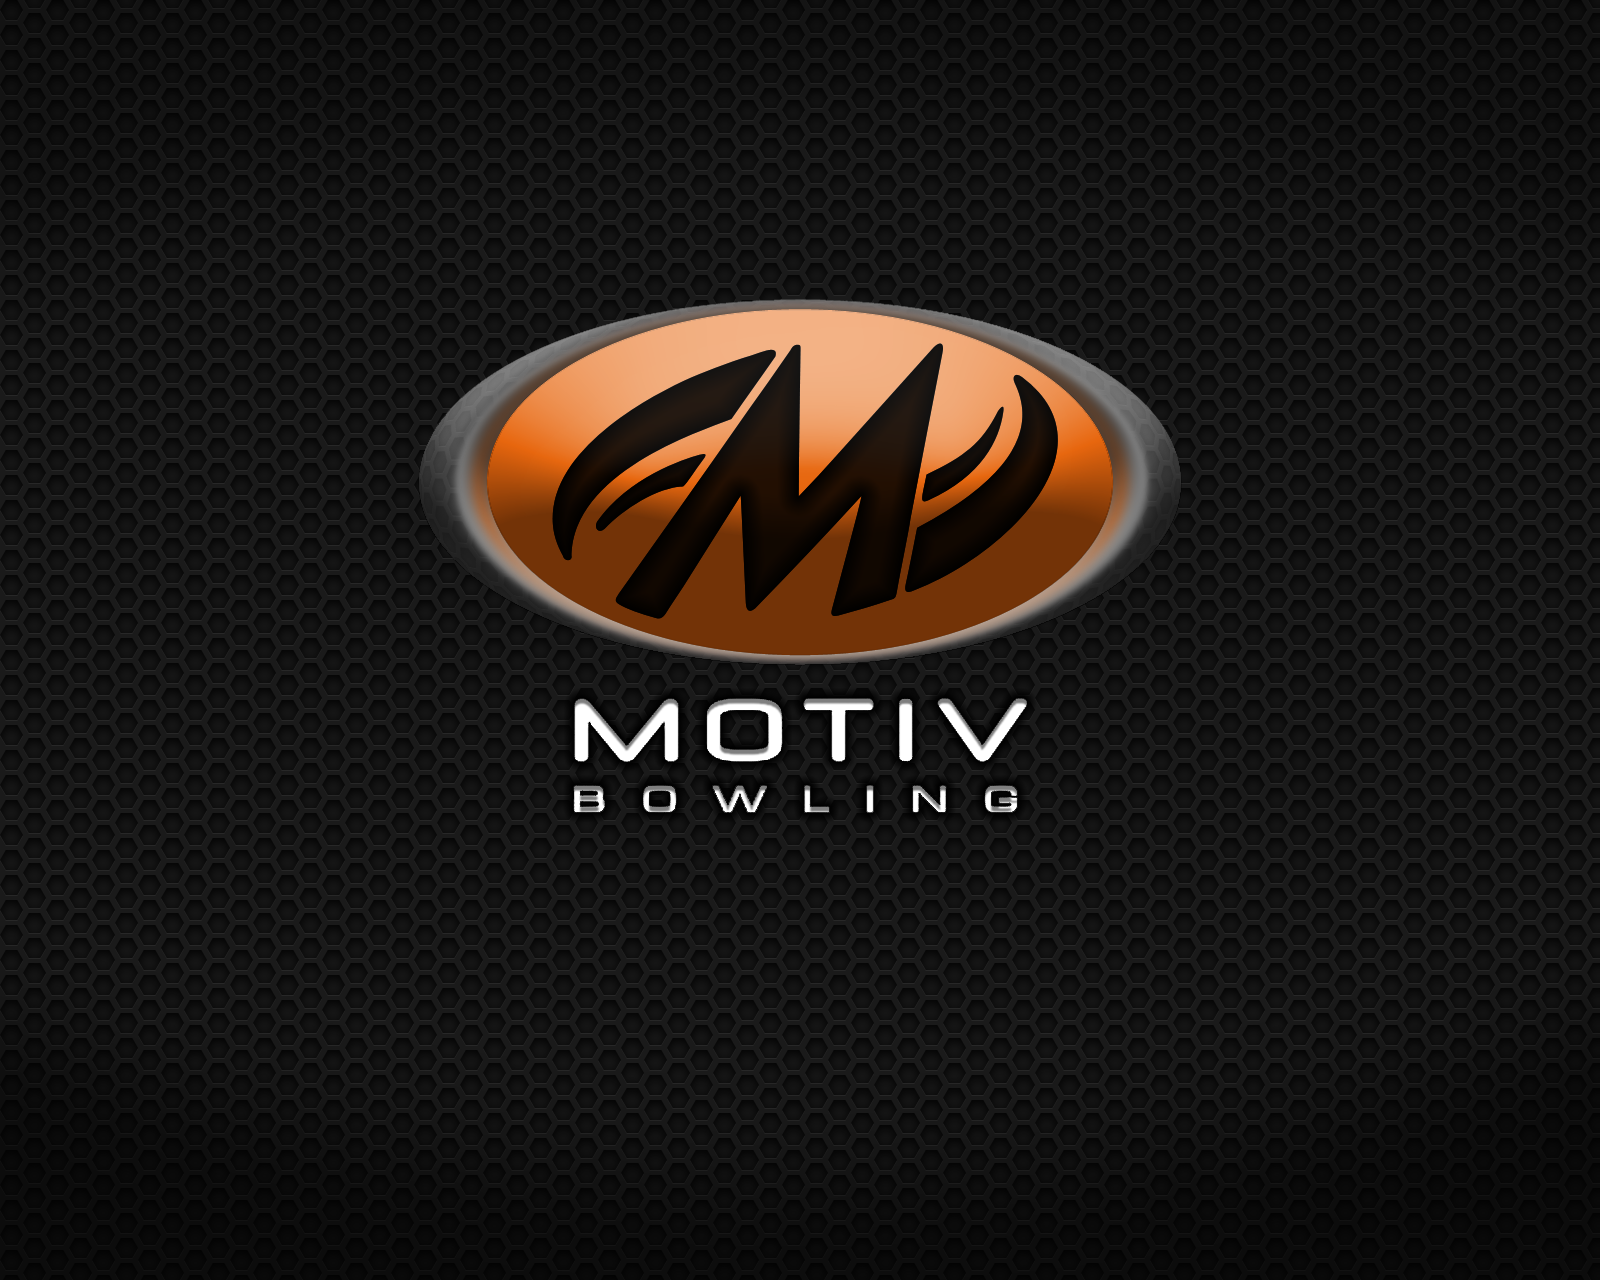 Motiv Bowling Wallpaper by dragonskindler